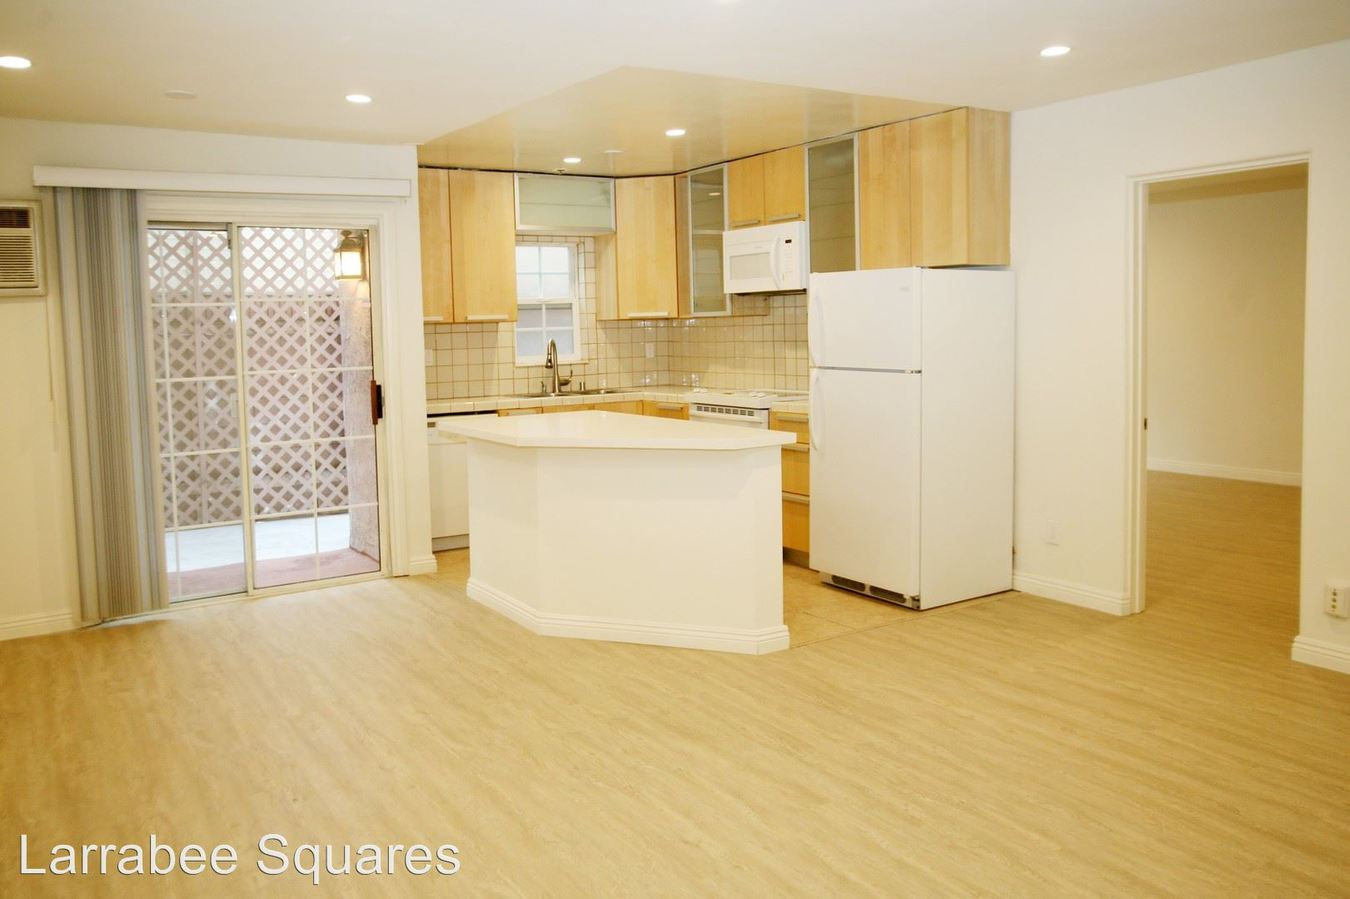 2 Bedrooms 2 Bathrooms Apartment for rent at 950 Larrabee St. in West Hollywood, CA